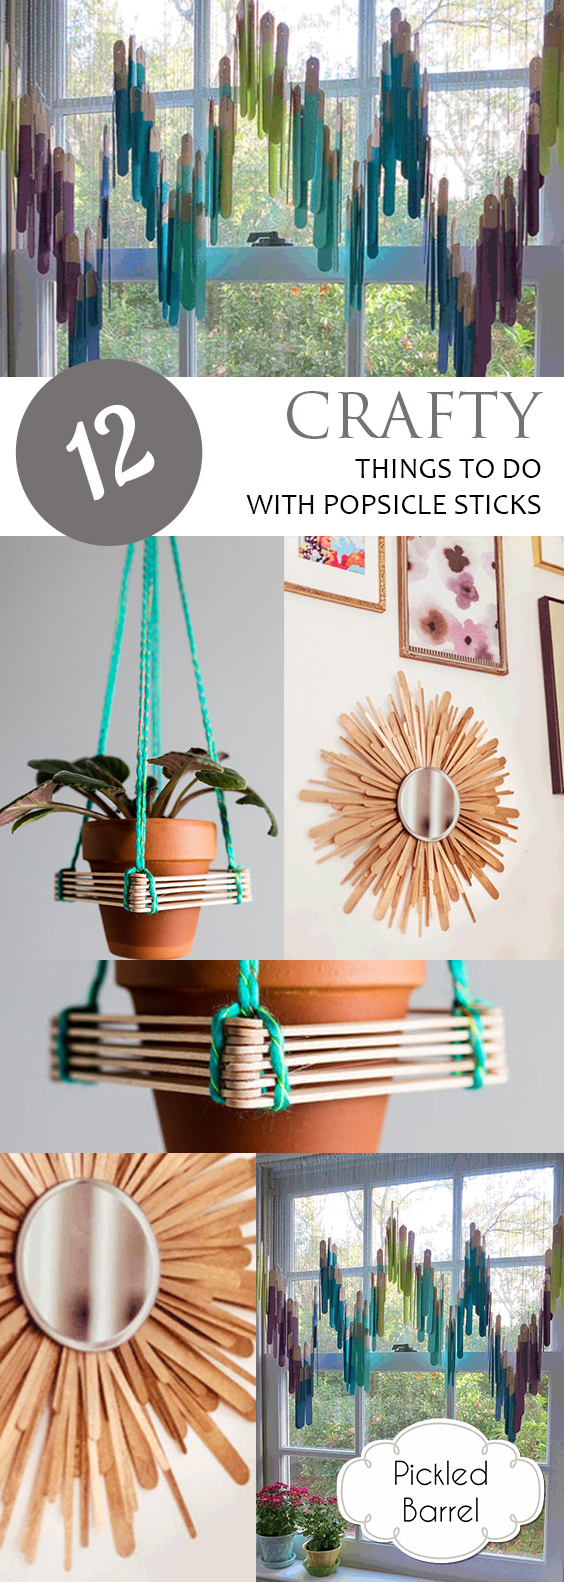 12 Crafty Things to Do With Popsicle Sticks| Popsicle Crafts, Popsicle Stick Craft Projects, Craft Projects for the Home, Repurpose Crafts, Repurpose Crafts for the Home, Crafts, Fun Craft Projects, Popsicle Stick Crafts, Popular